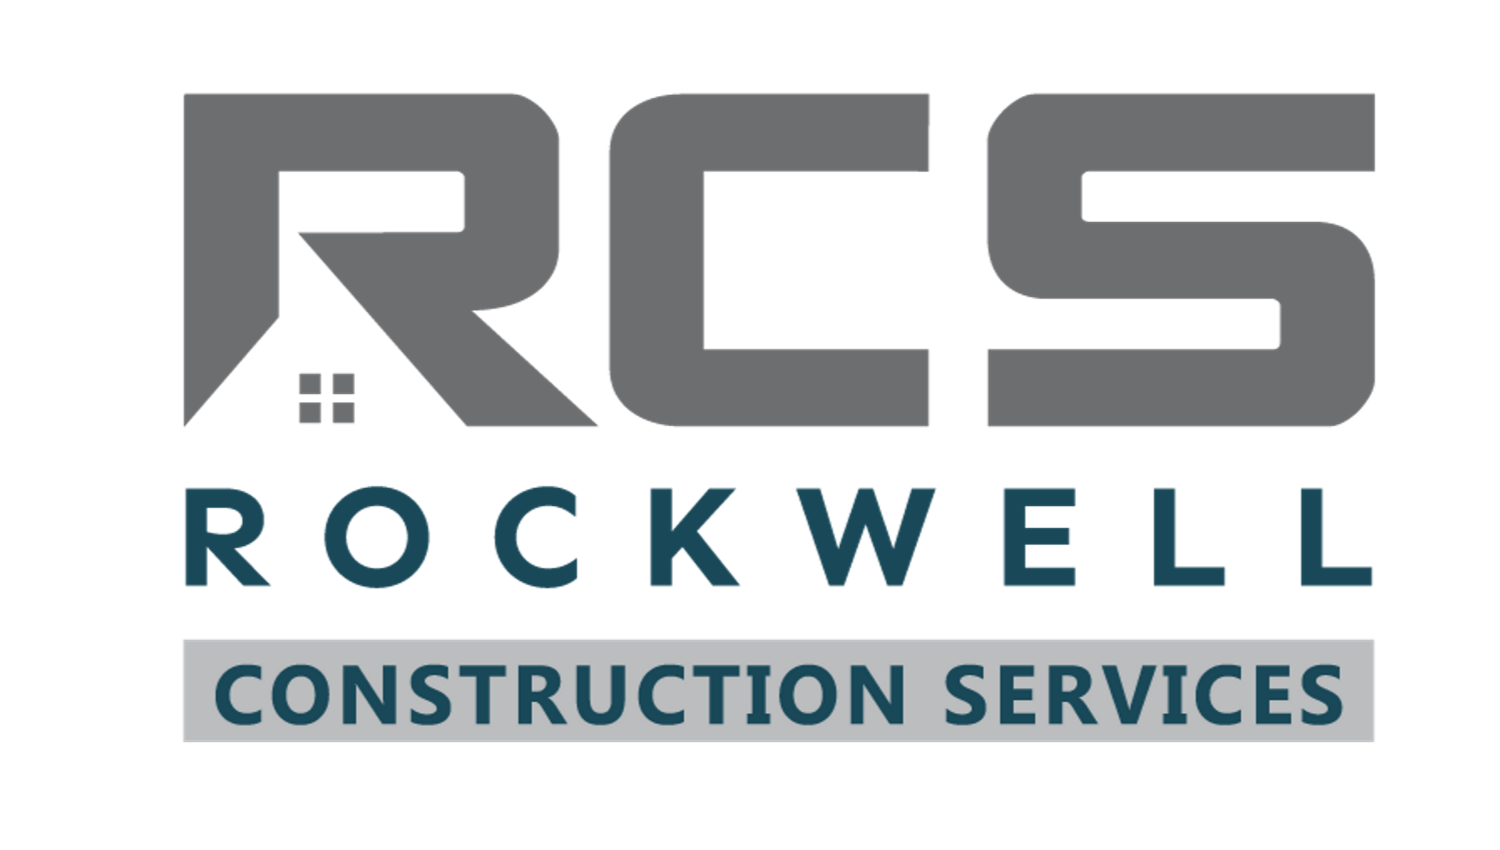 Rockwell Construction Services